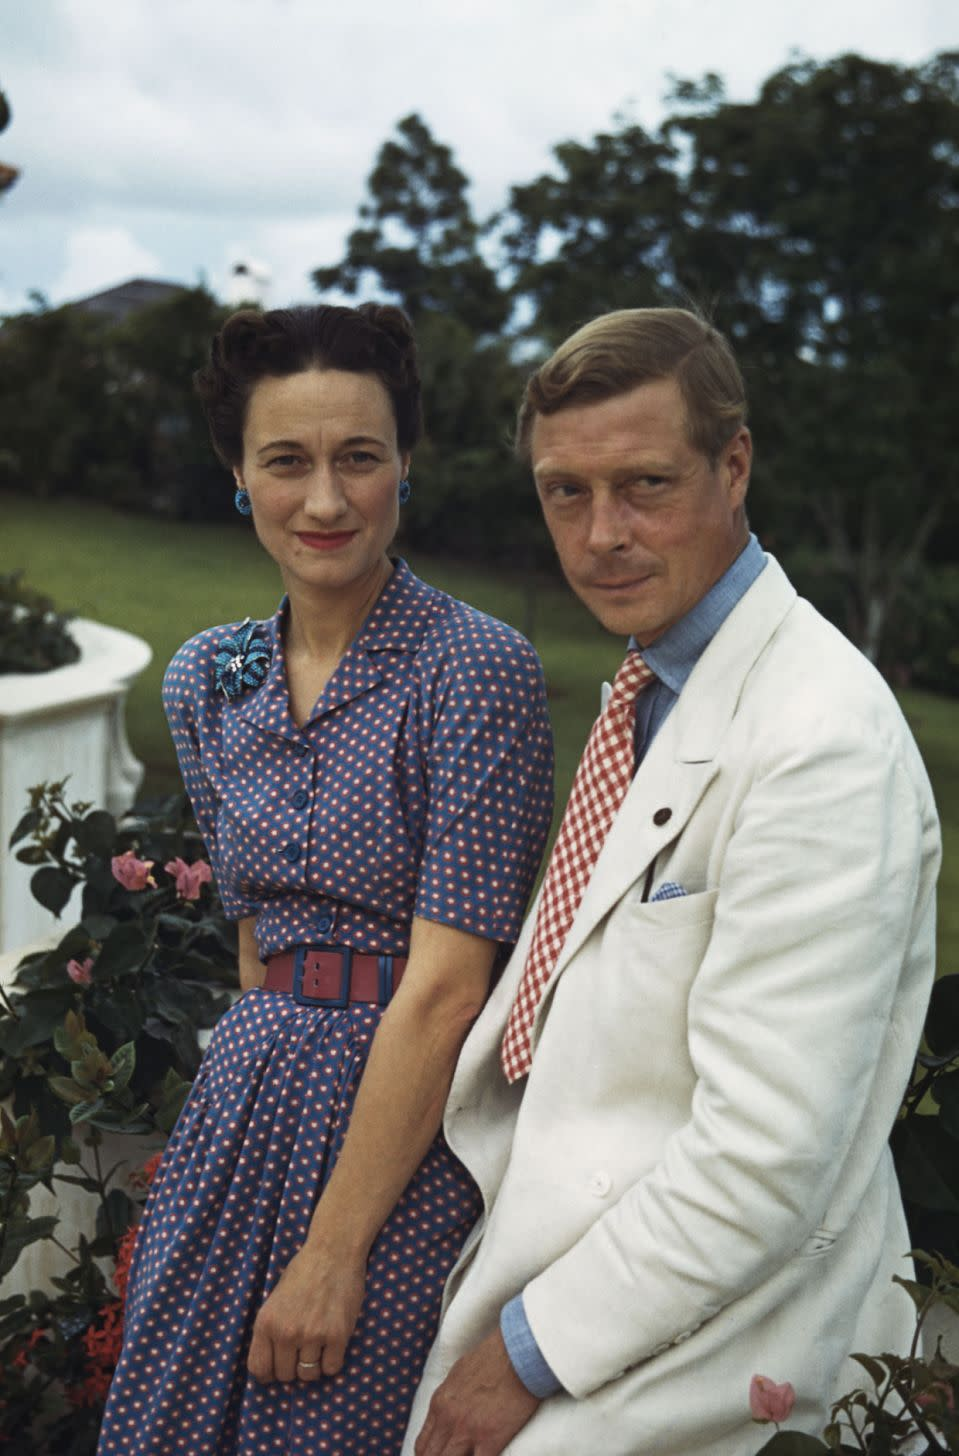 Wallis Simpson, whose marriage to King Edward VIII subsequently caused his abdication from the throne, is buried in the grounds of Frogmore estate, alongside her husband. Photo: Getty Images